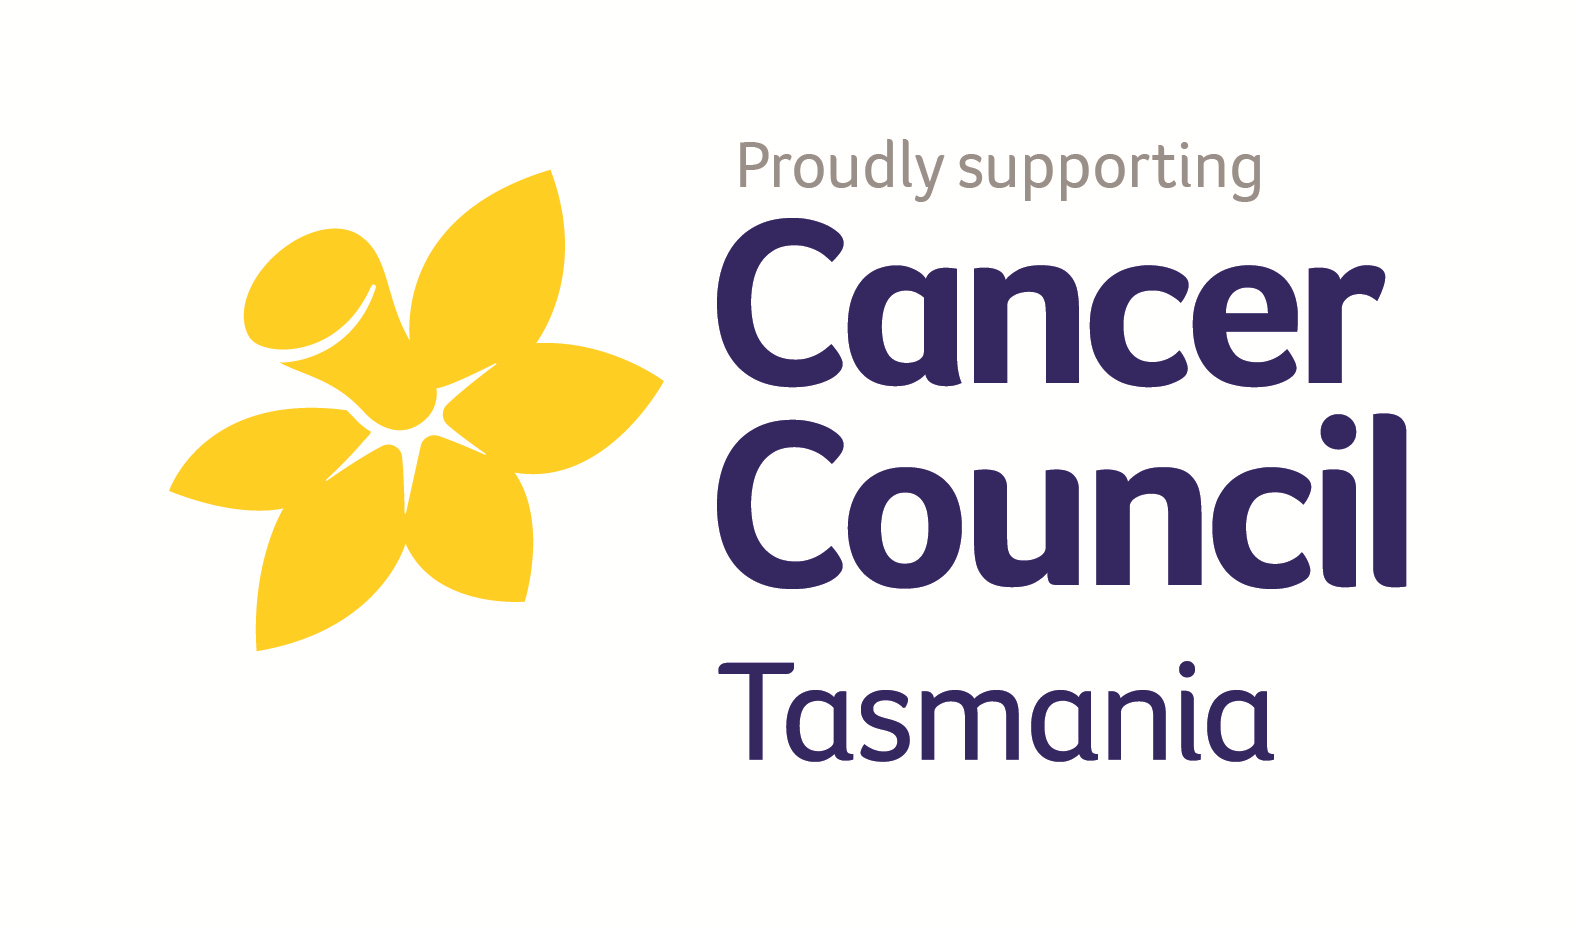 Tasmania_LOGO_BLUE&YELLOW_CMYK_Proudly Supporting